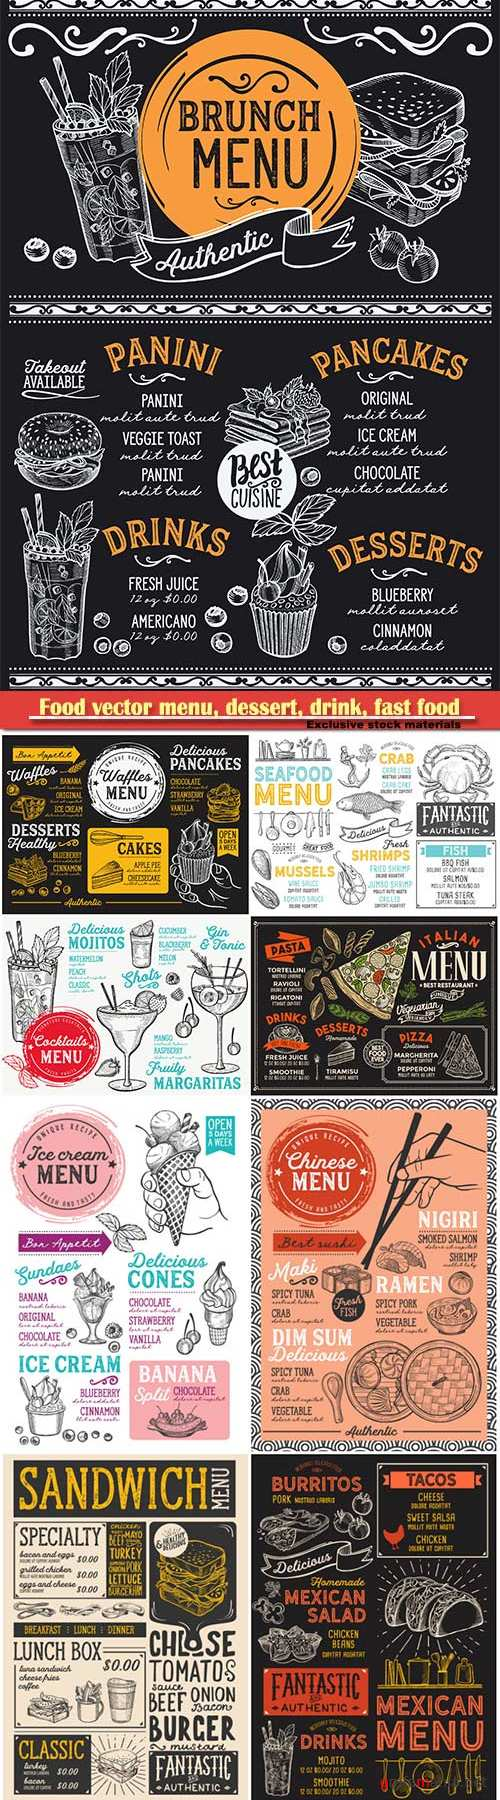 Food vector menu, dessert, drink, fast food